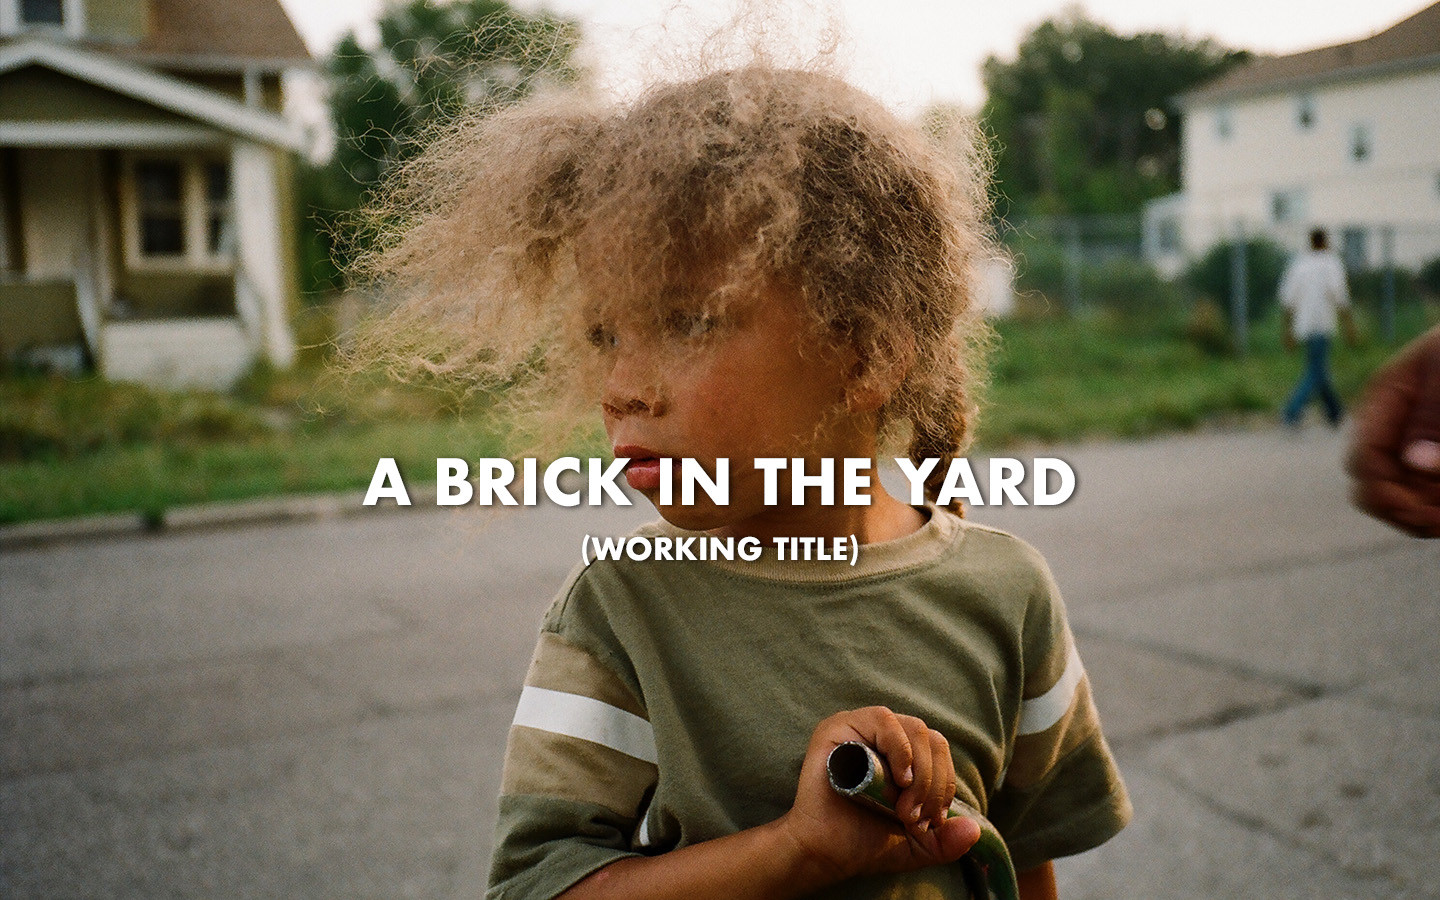 A BRICK IN THE YARD